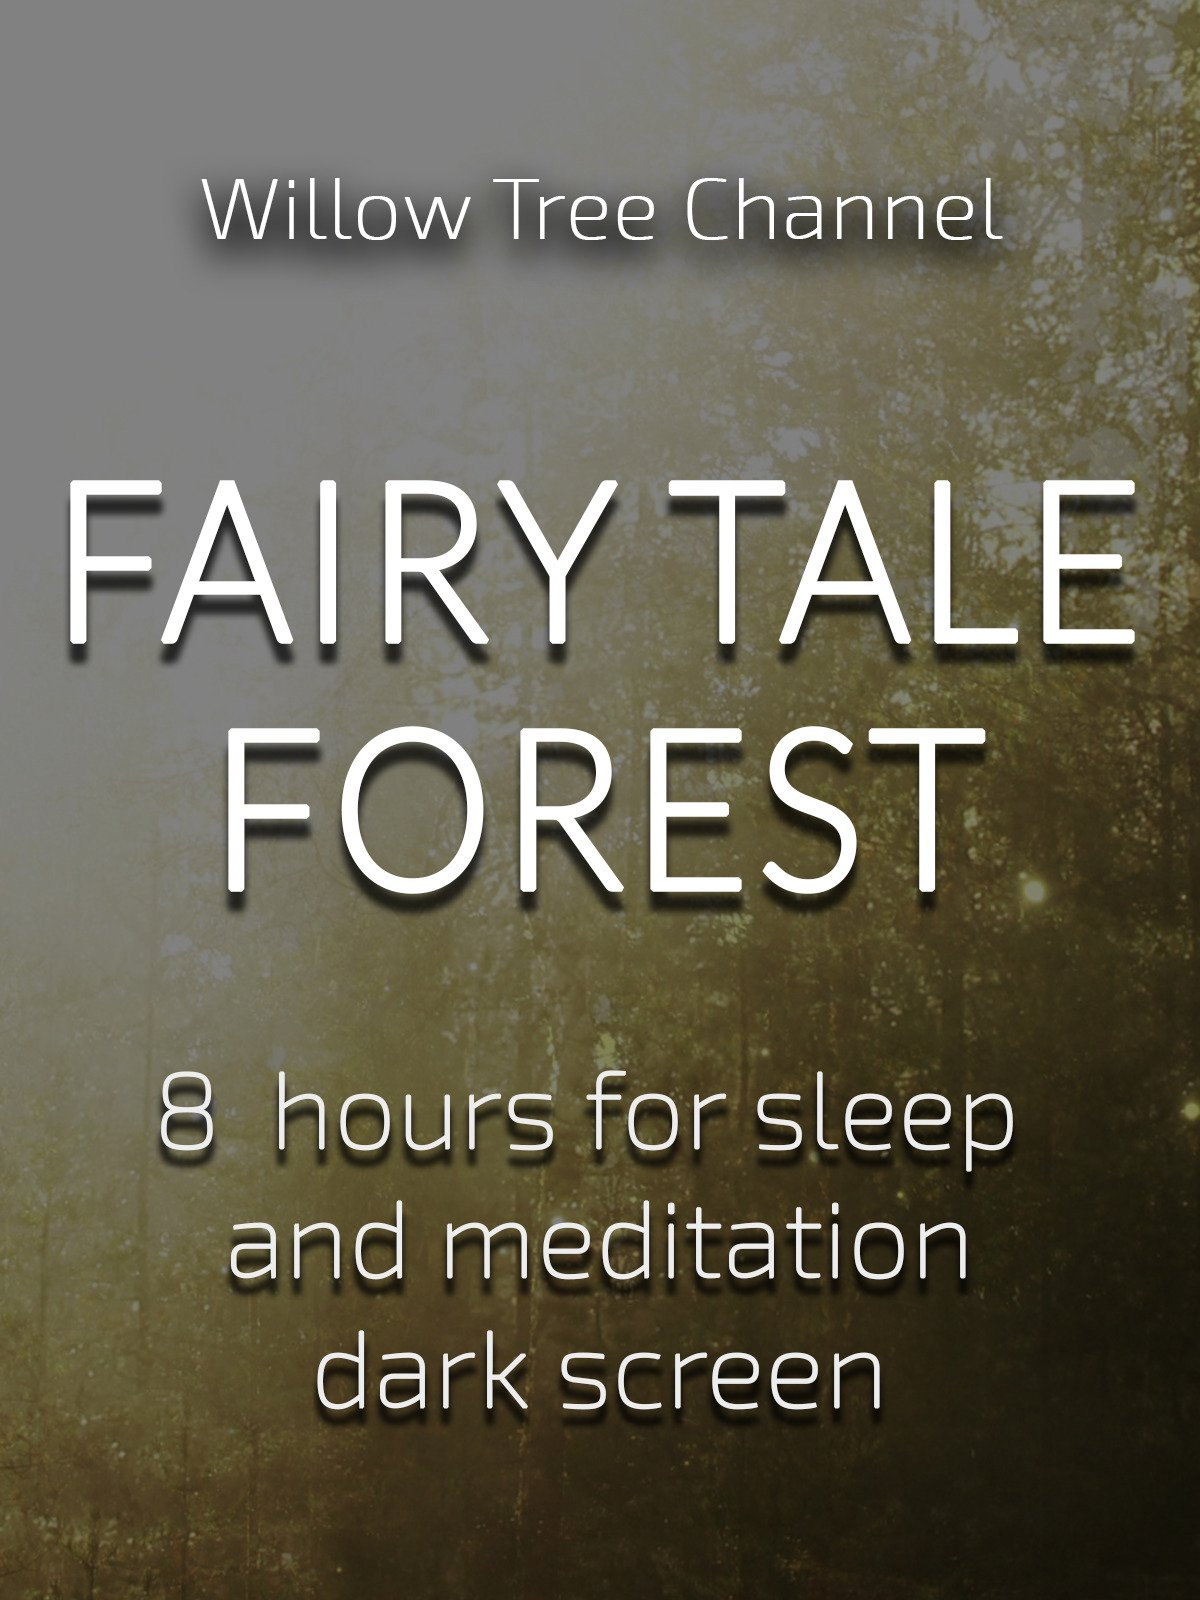 Fairy tale forest, 8 hours for Sleep and Meditation, dark screen